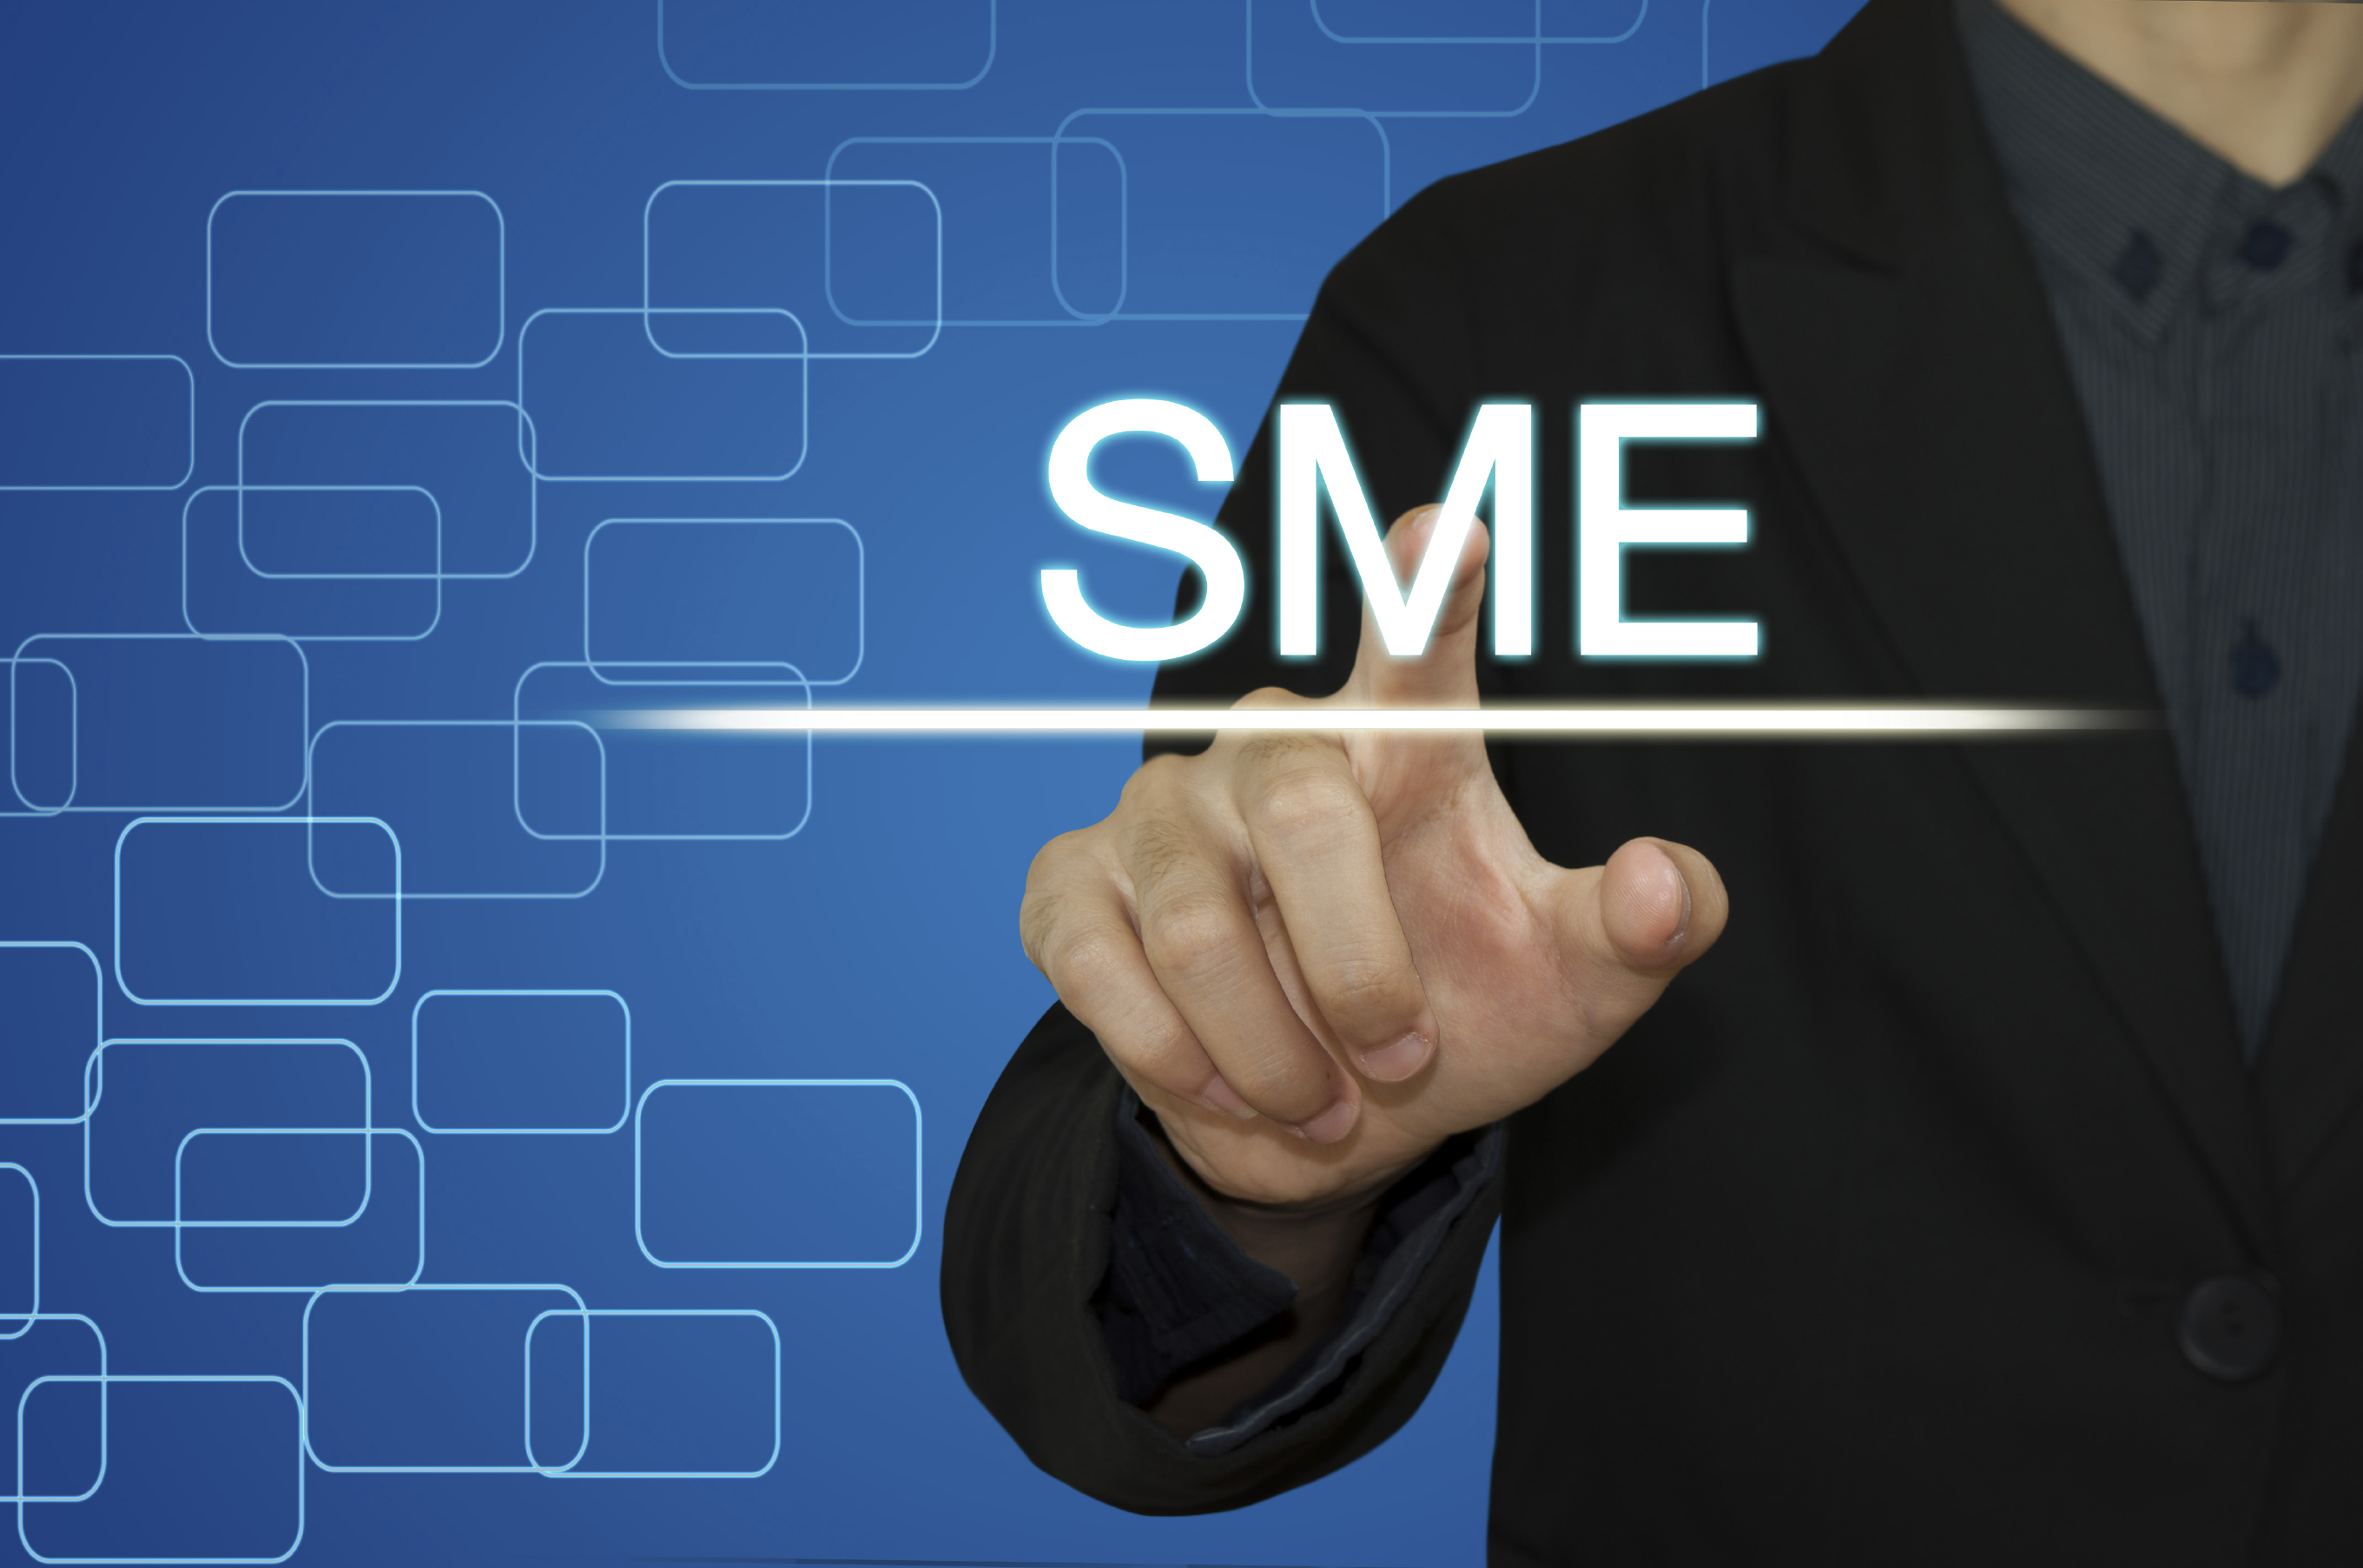 SMEs must transform their business to ride on the digital wave.